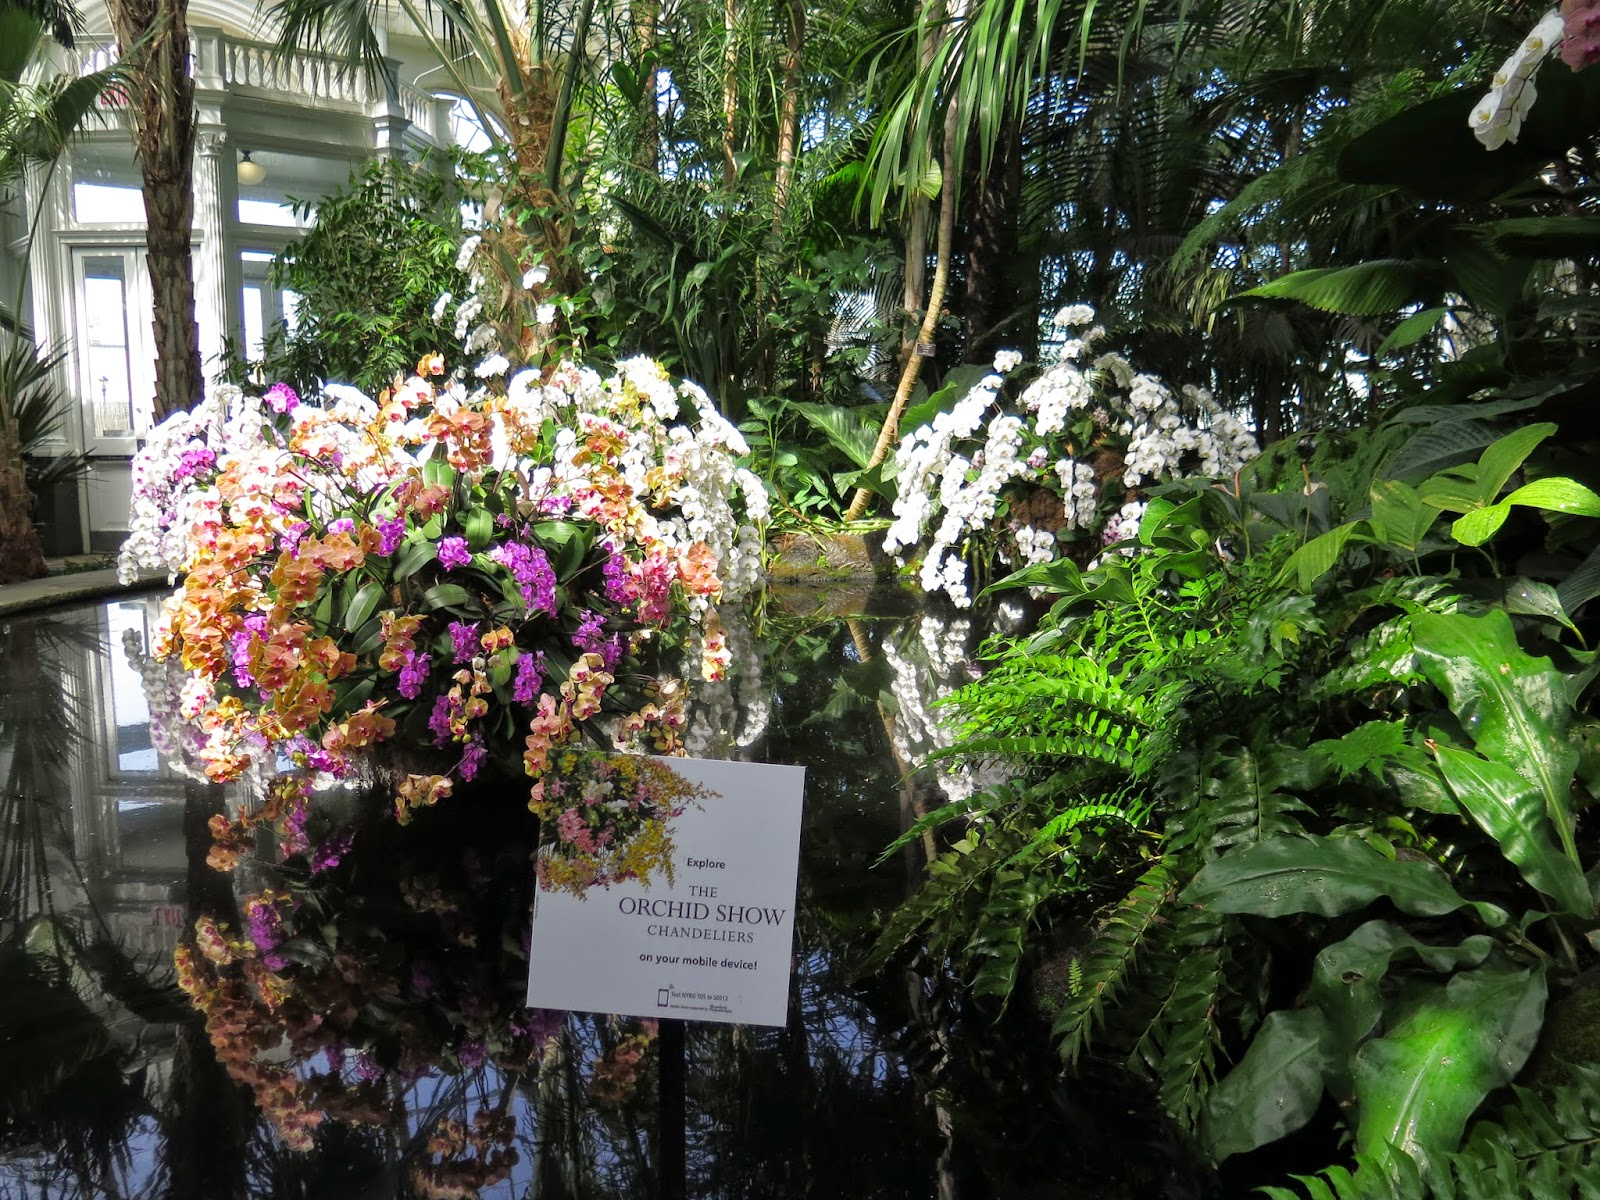 Ciao domenica april 2015 inside the conservatory we were greeted by floating islands of orchids mozeypictures Gallery